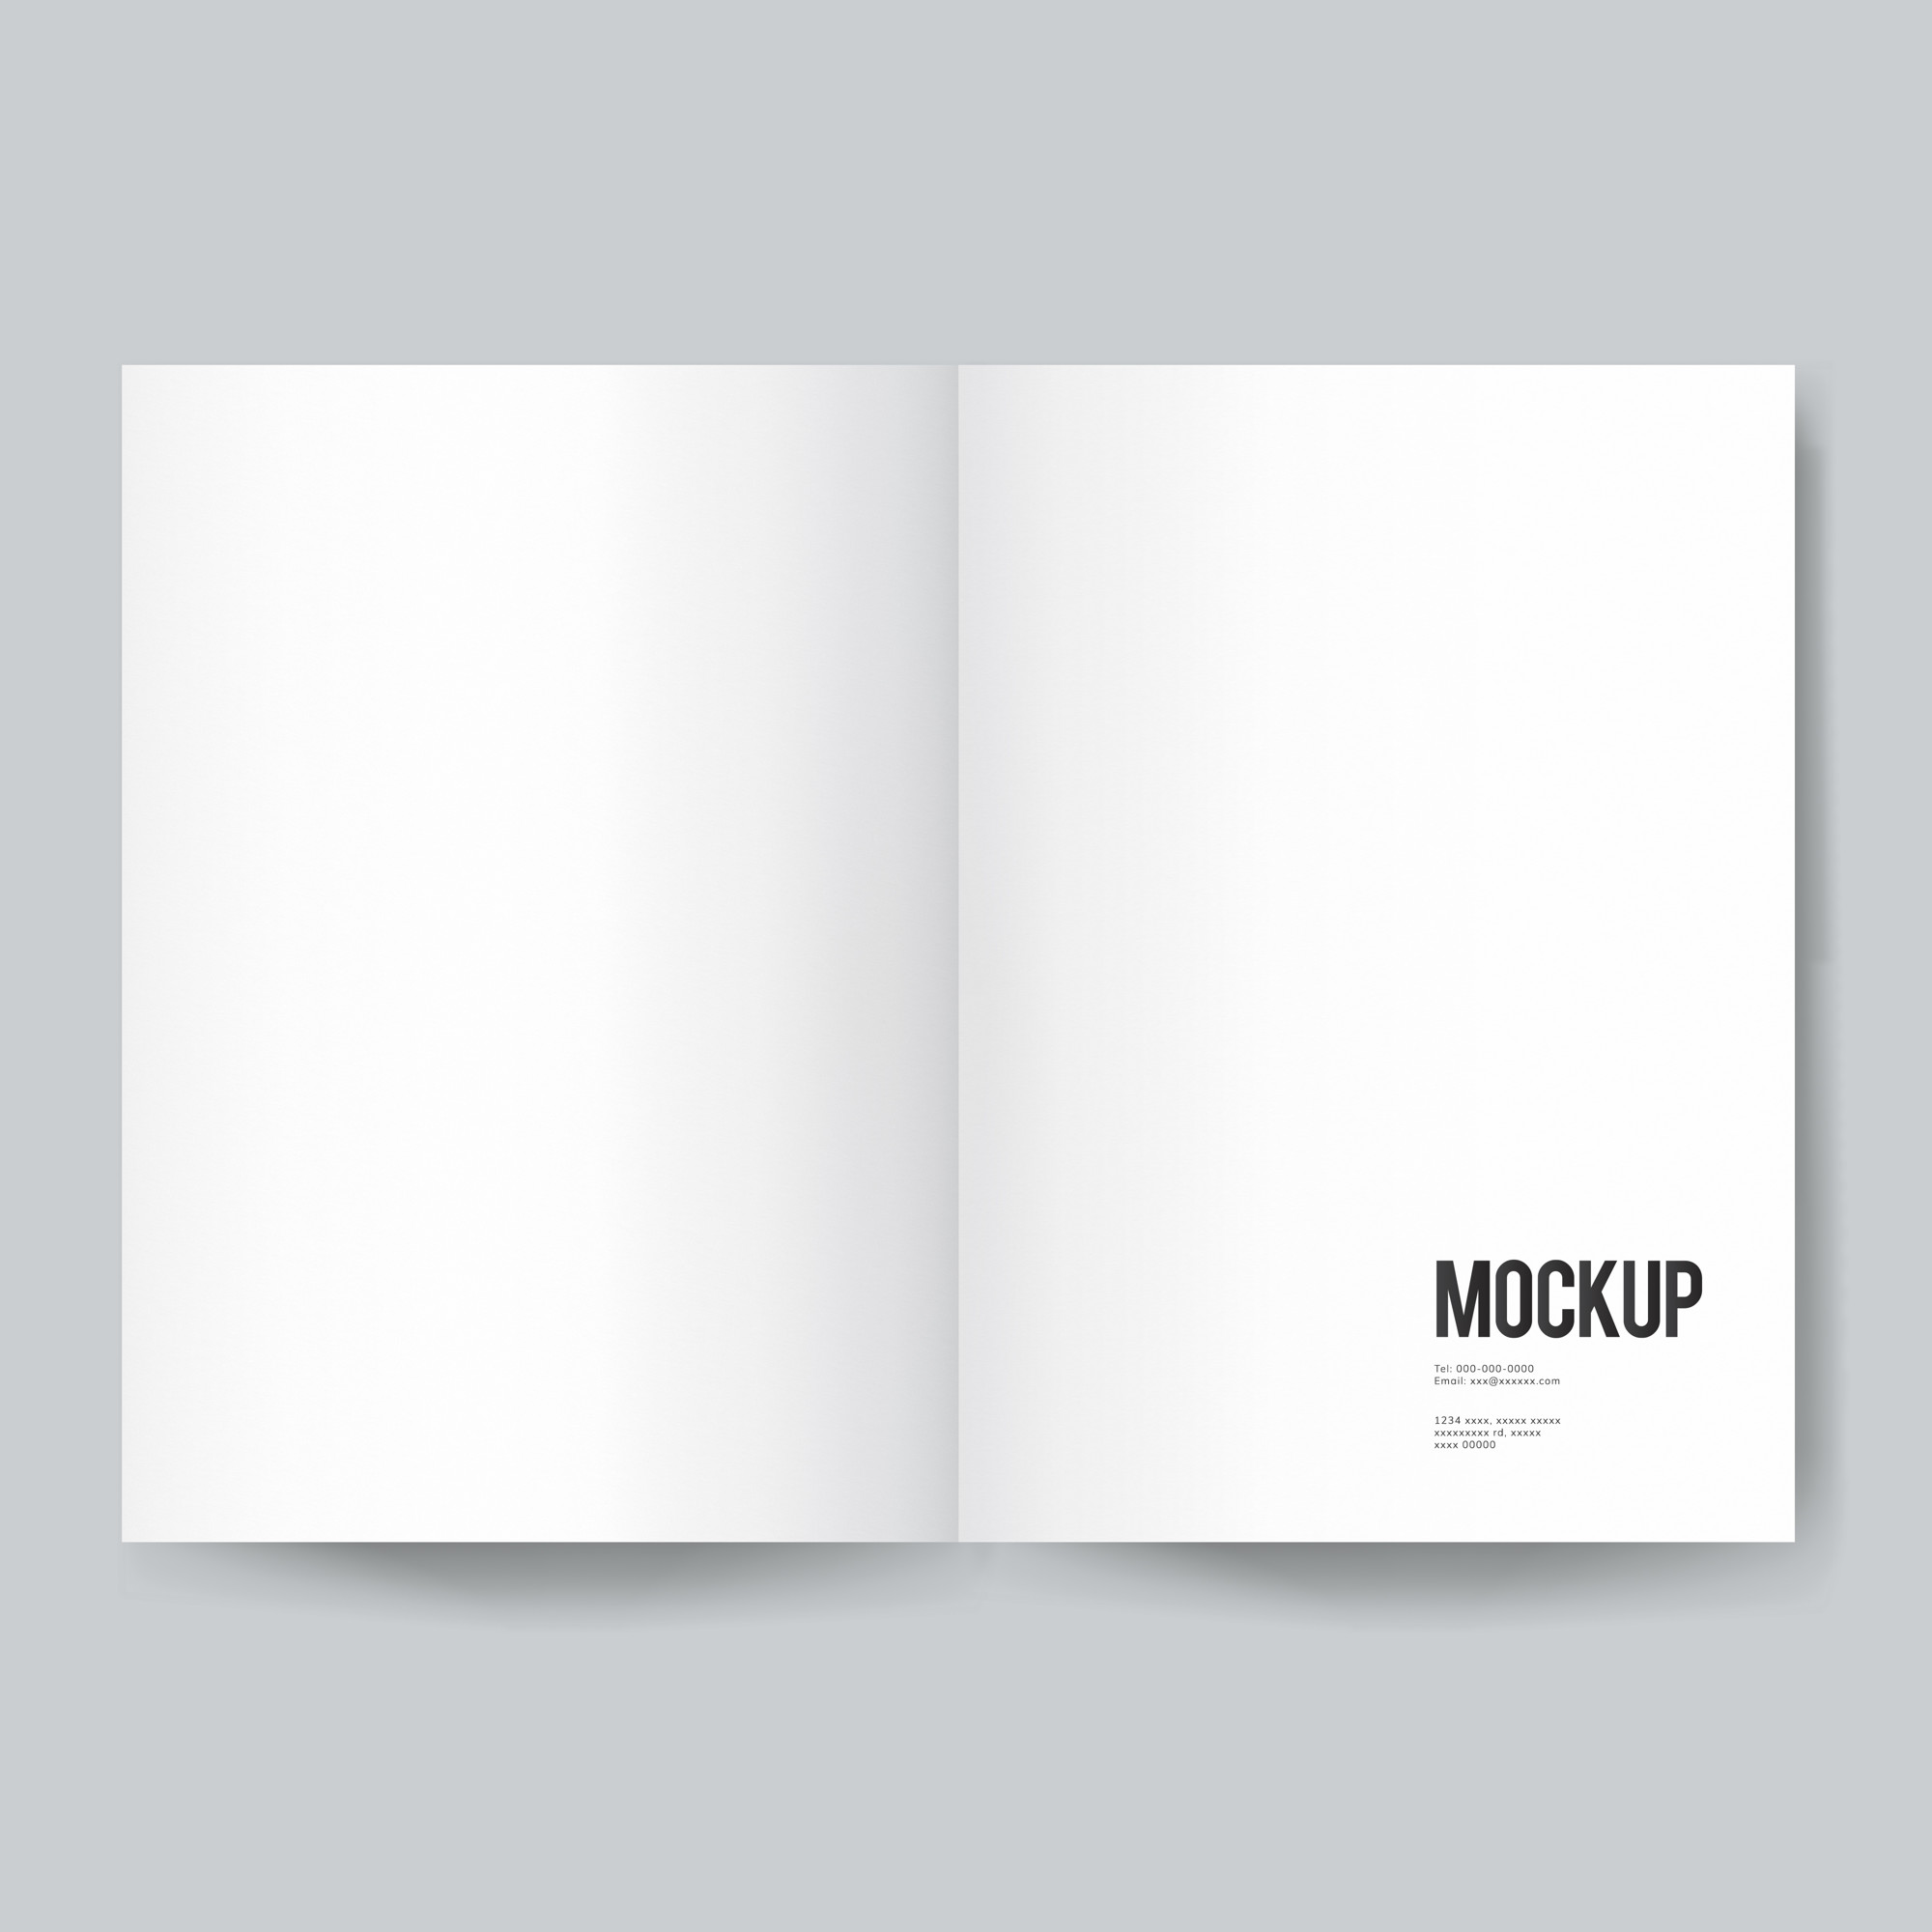 Blank book or magazine template mockup